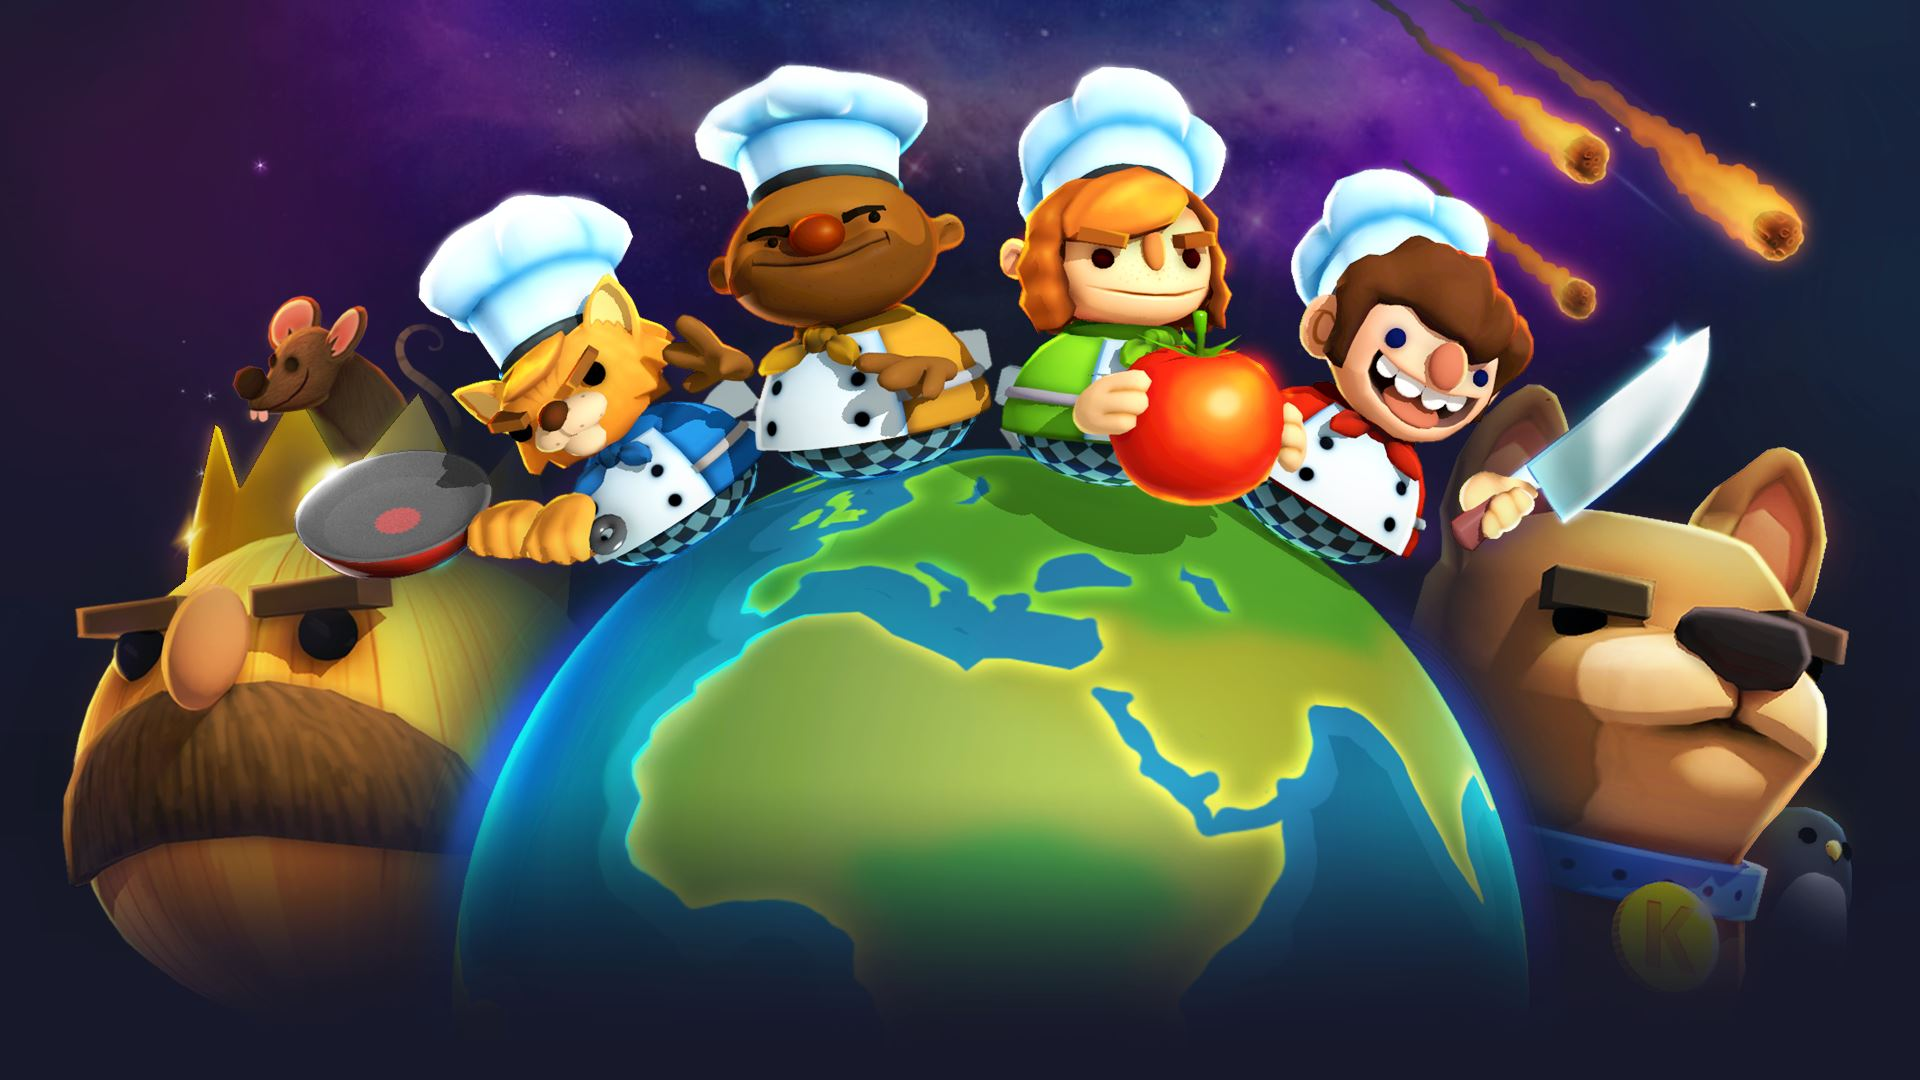 Overcooked Special Edition is launching this week on Switch